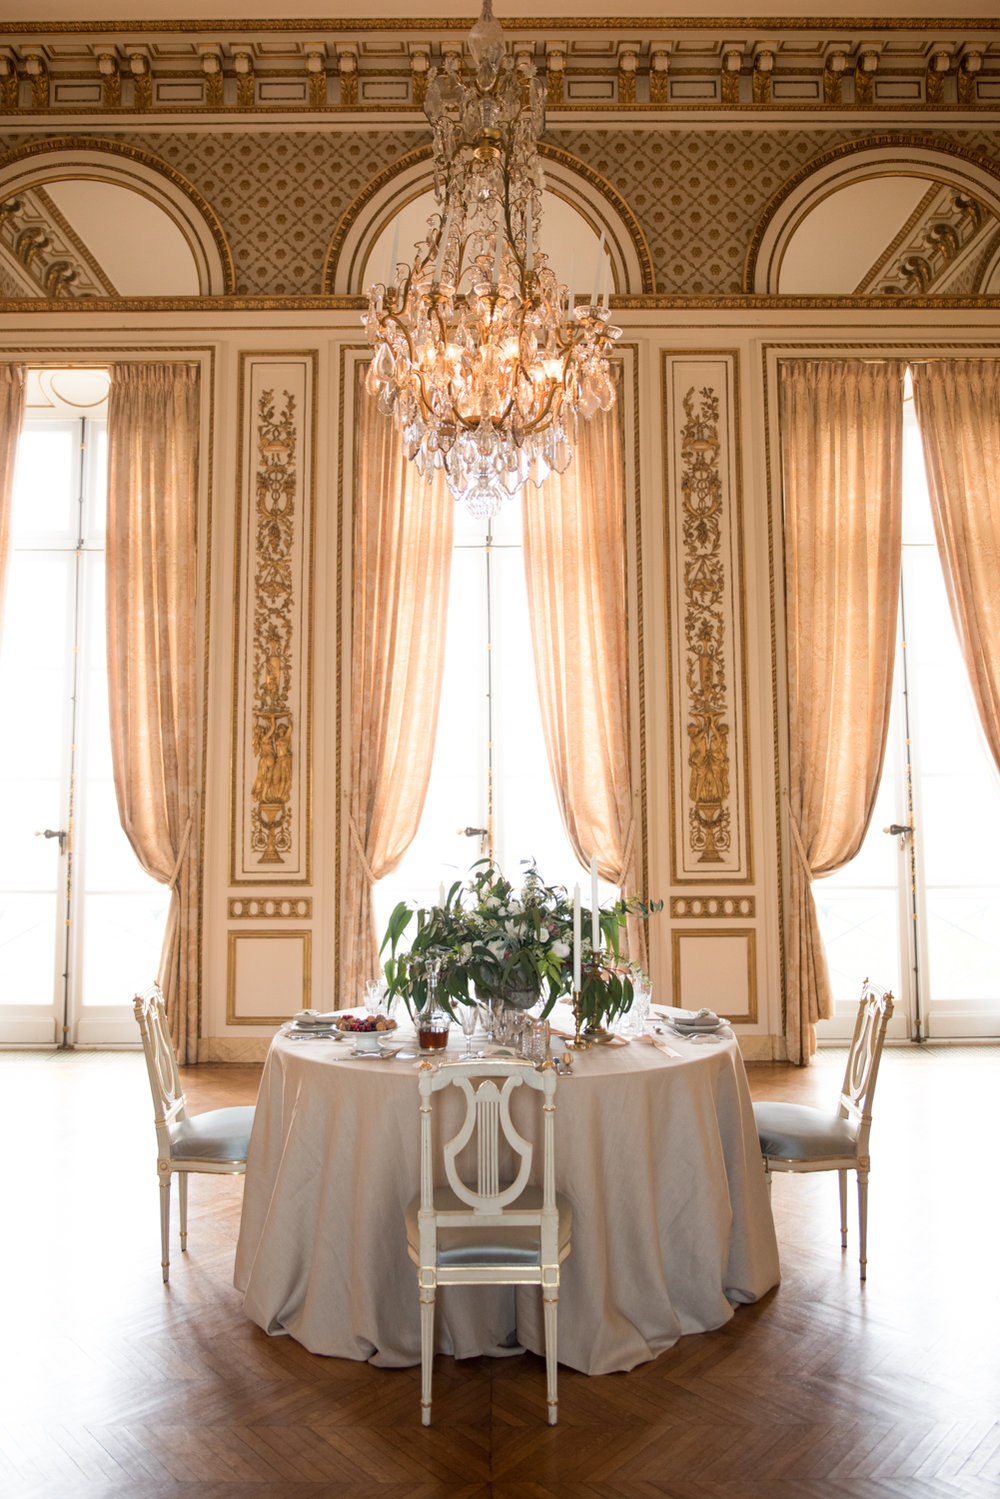 A wedding reception table in a ballroom at Pavillon de la Musique in Paris, France; Sylvie Gil Photography